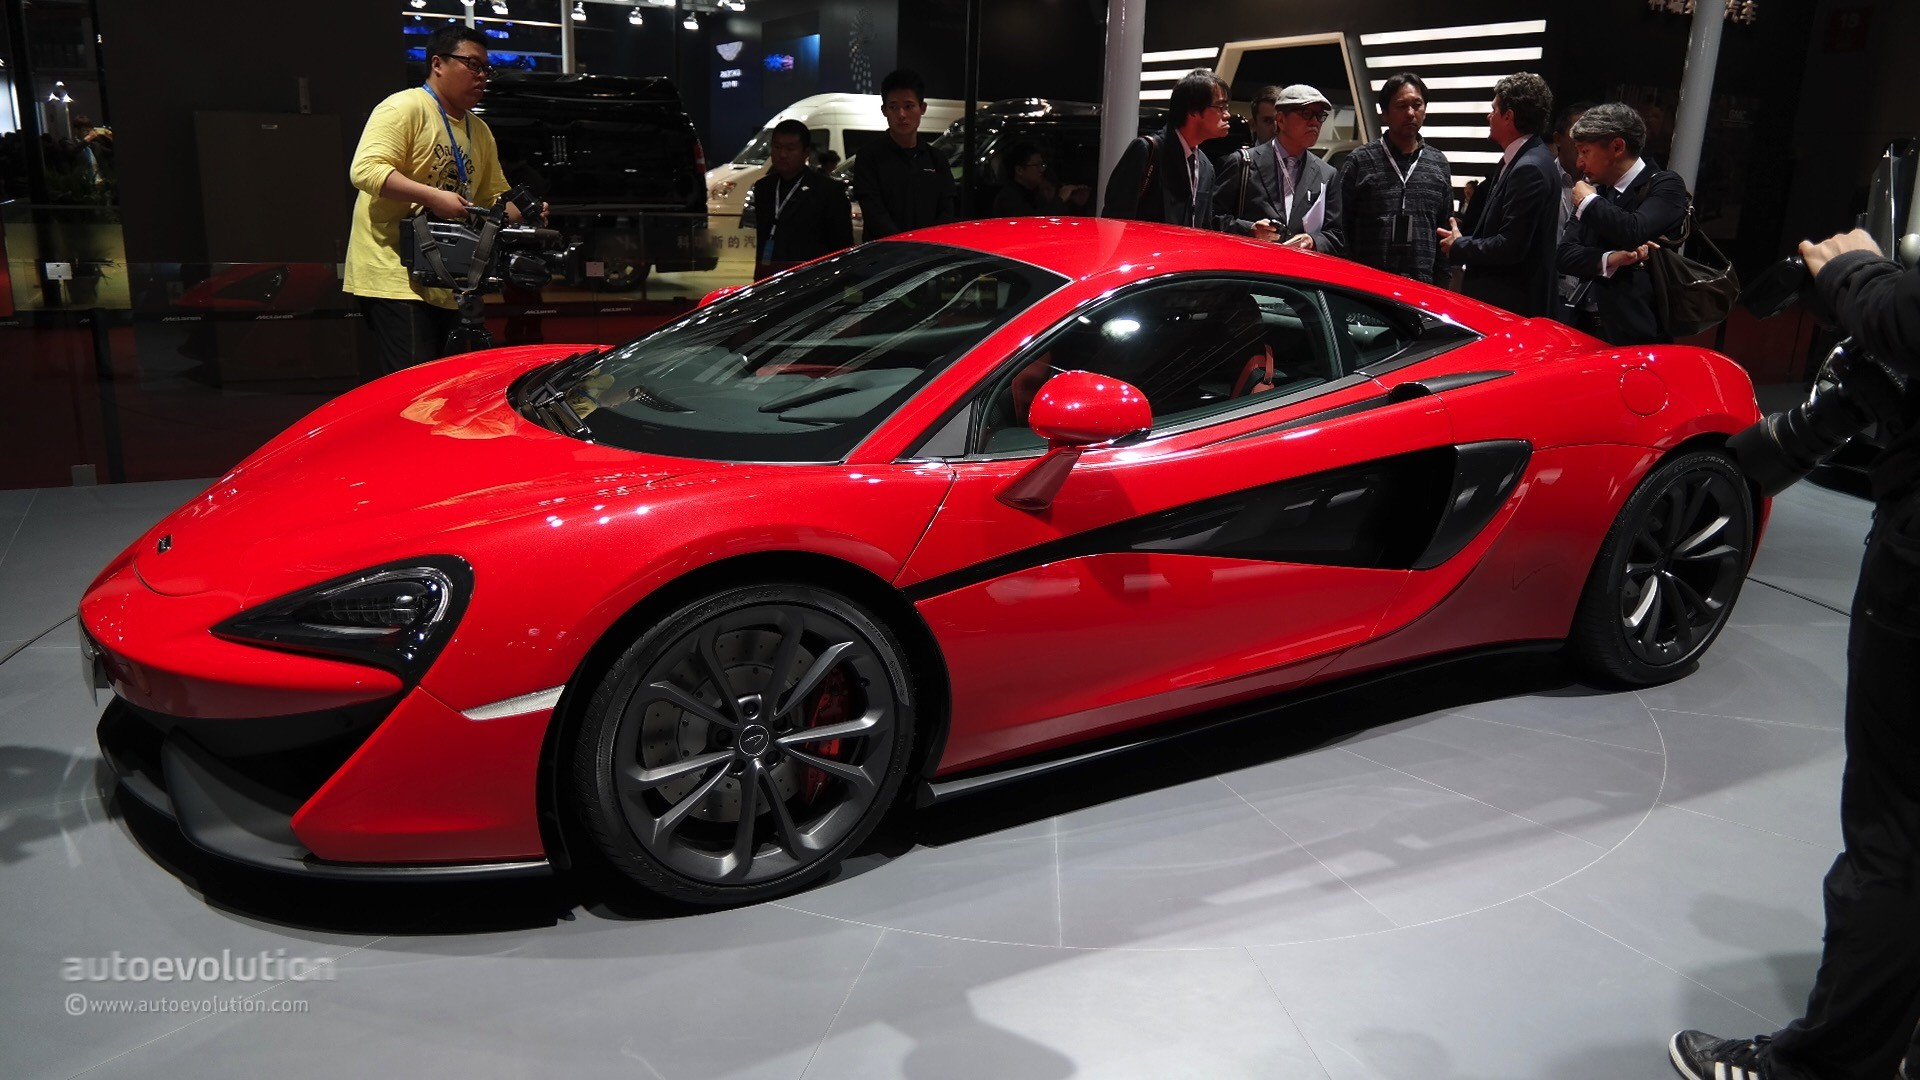 2016 Mclaren 540c Launched In Shanghai As The Cheapest